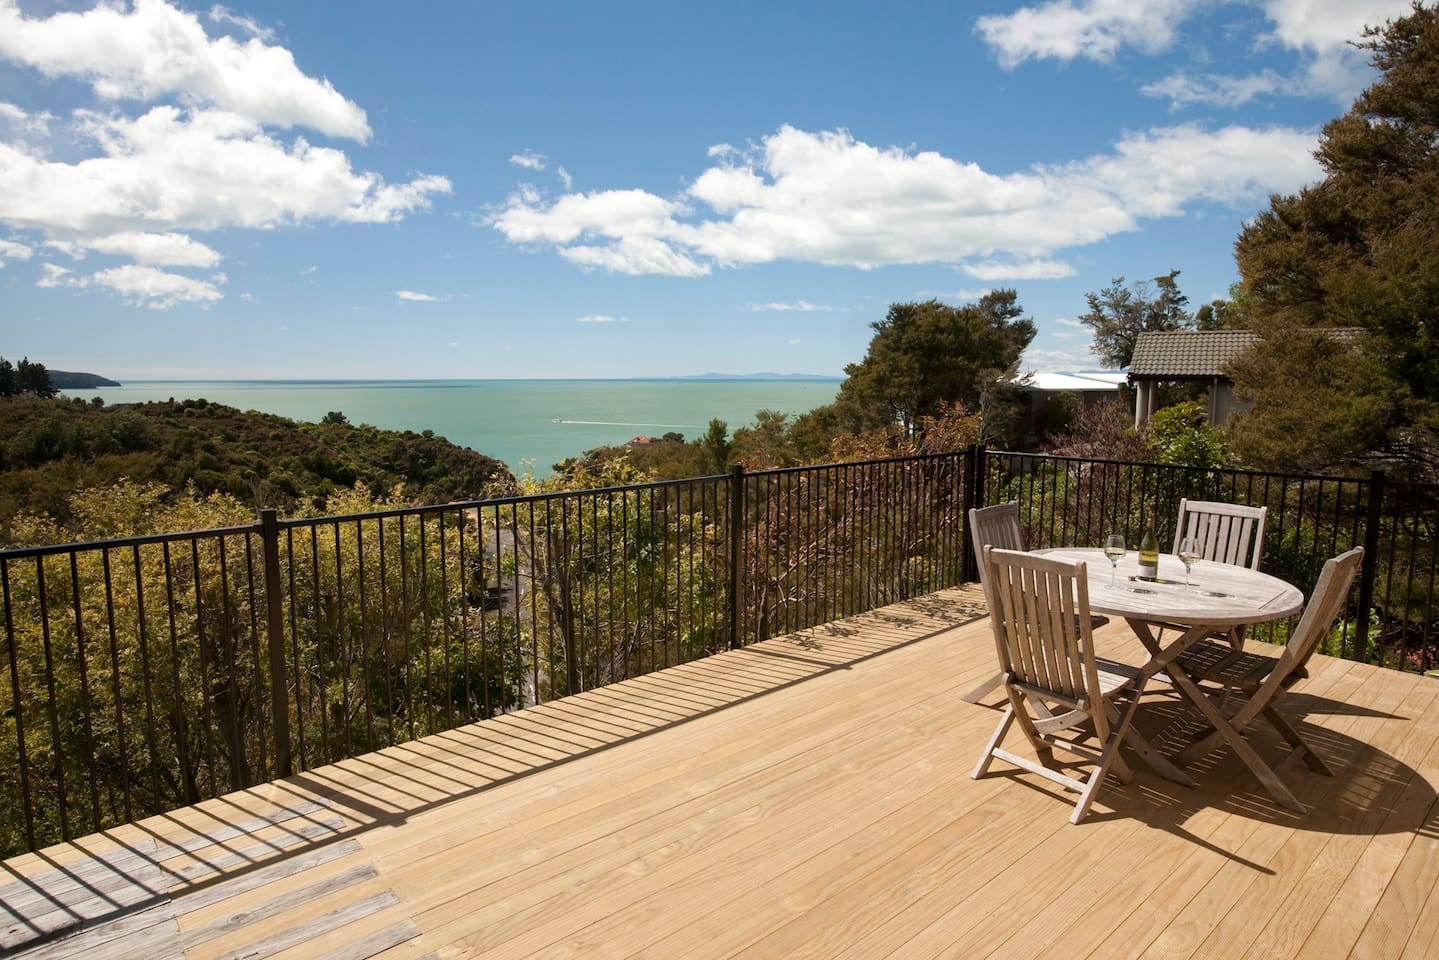 Seaviews and deck area.